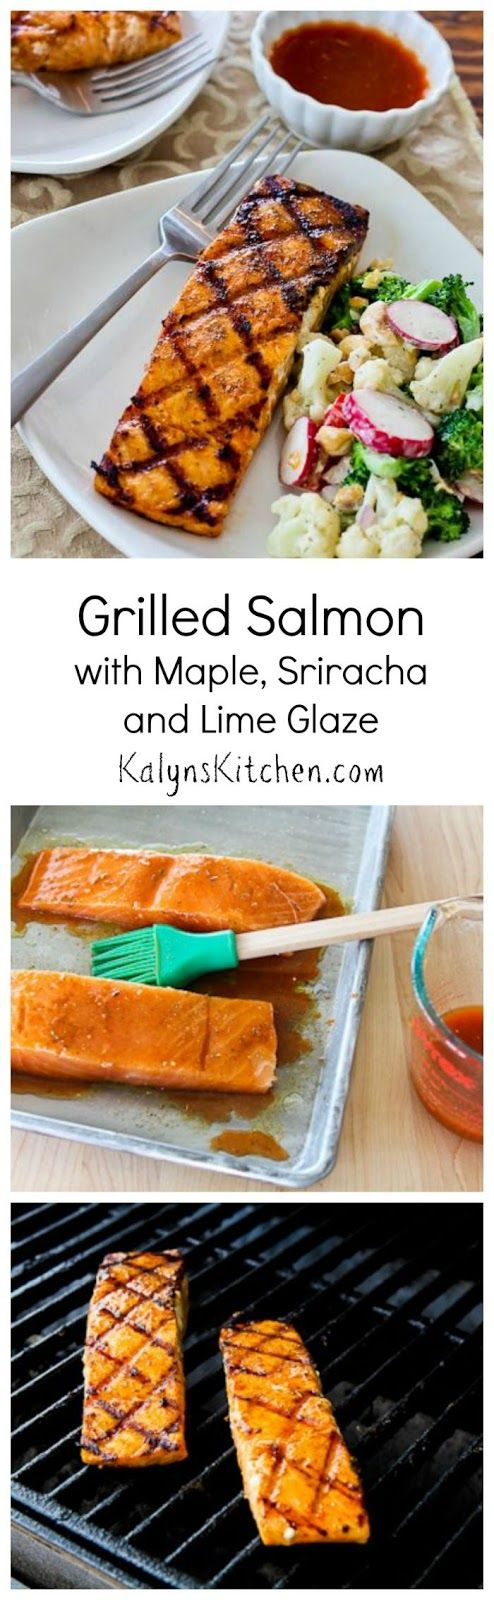 Grilled Salmon Recipe with Maple-Sriracha-Lime Glaze [from KalynsKitchen.com]